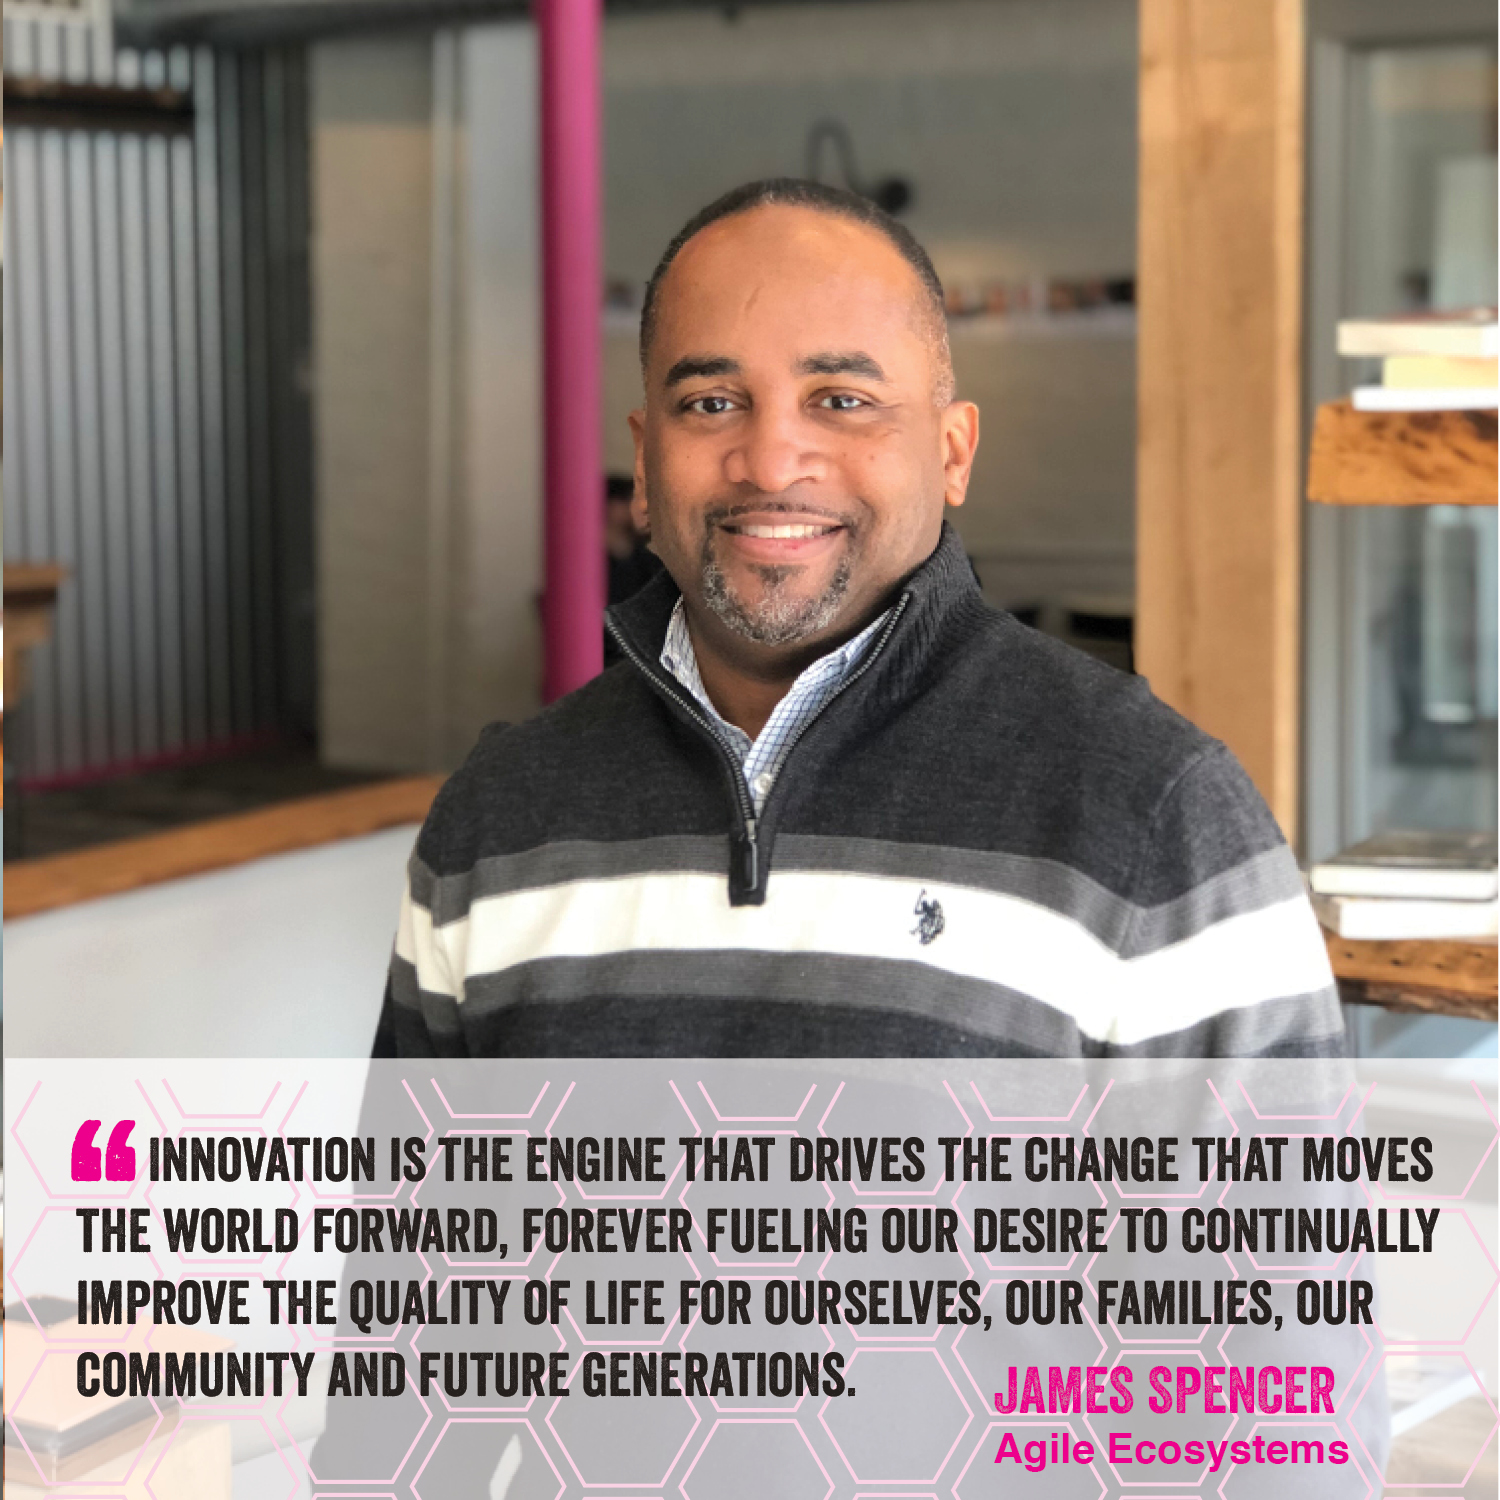 """""""Innovation is the engine that drives the change that moves the world forward, forever fueliing our desire to continually improve the quality of life for ourselves, our families, our community and future generations."""" James Spencer Agile Ecosystems"""